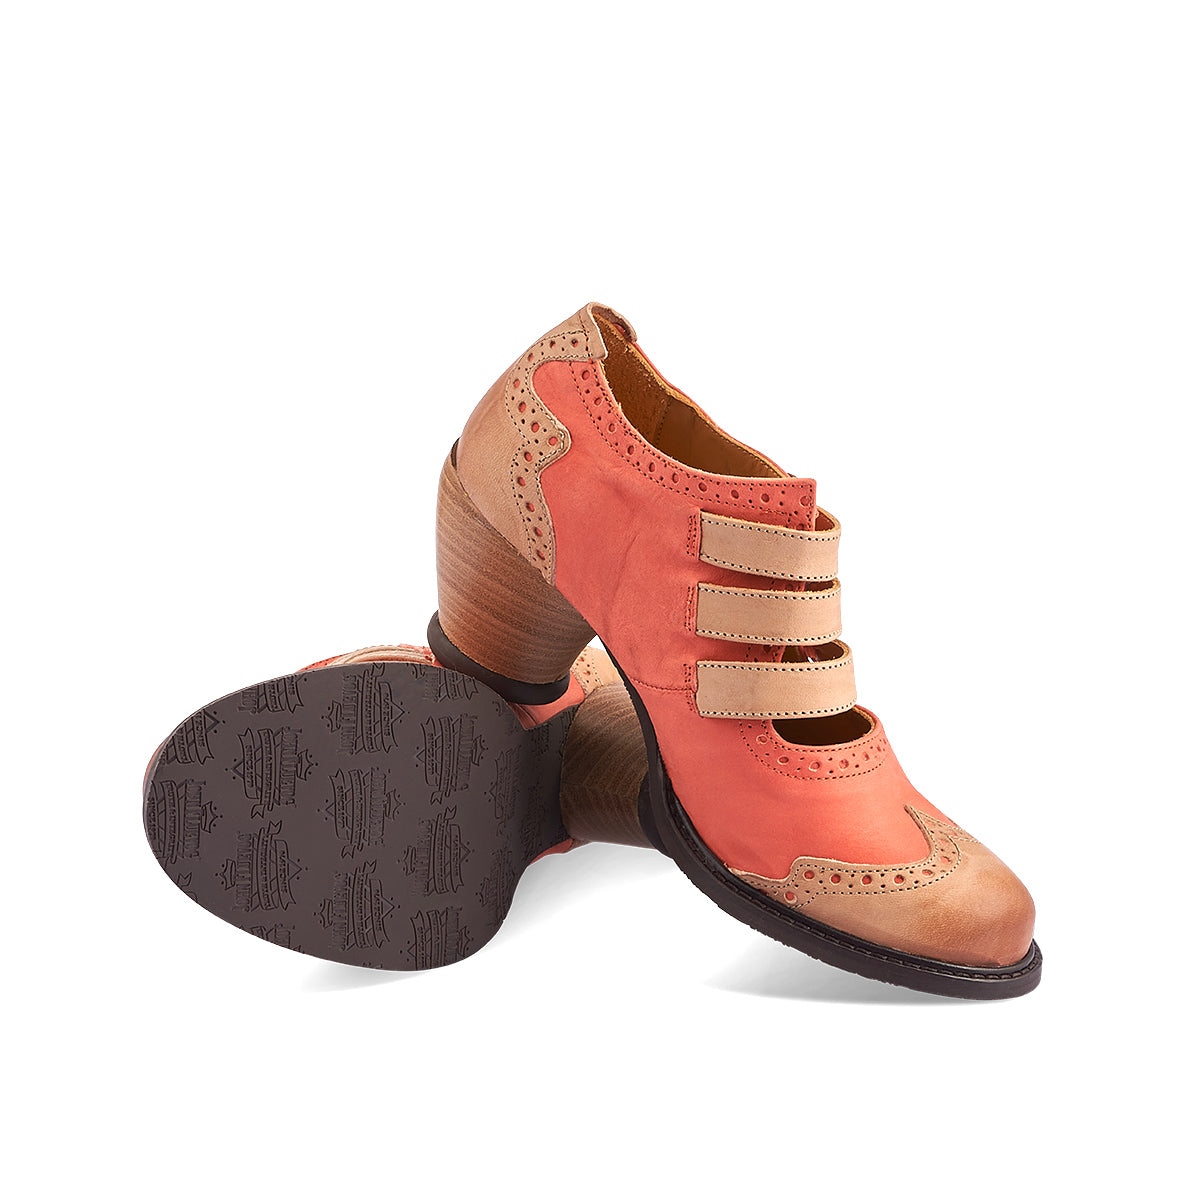 Inspired by vintage Fluevogs, Kitchener is a beautiful and unique heel with three fine straps for the perfect fit. This versatile shoe features custom brogue details, antiqued buckles and the super-friendly East End heel that will keep your feet happy all day long.